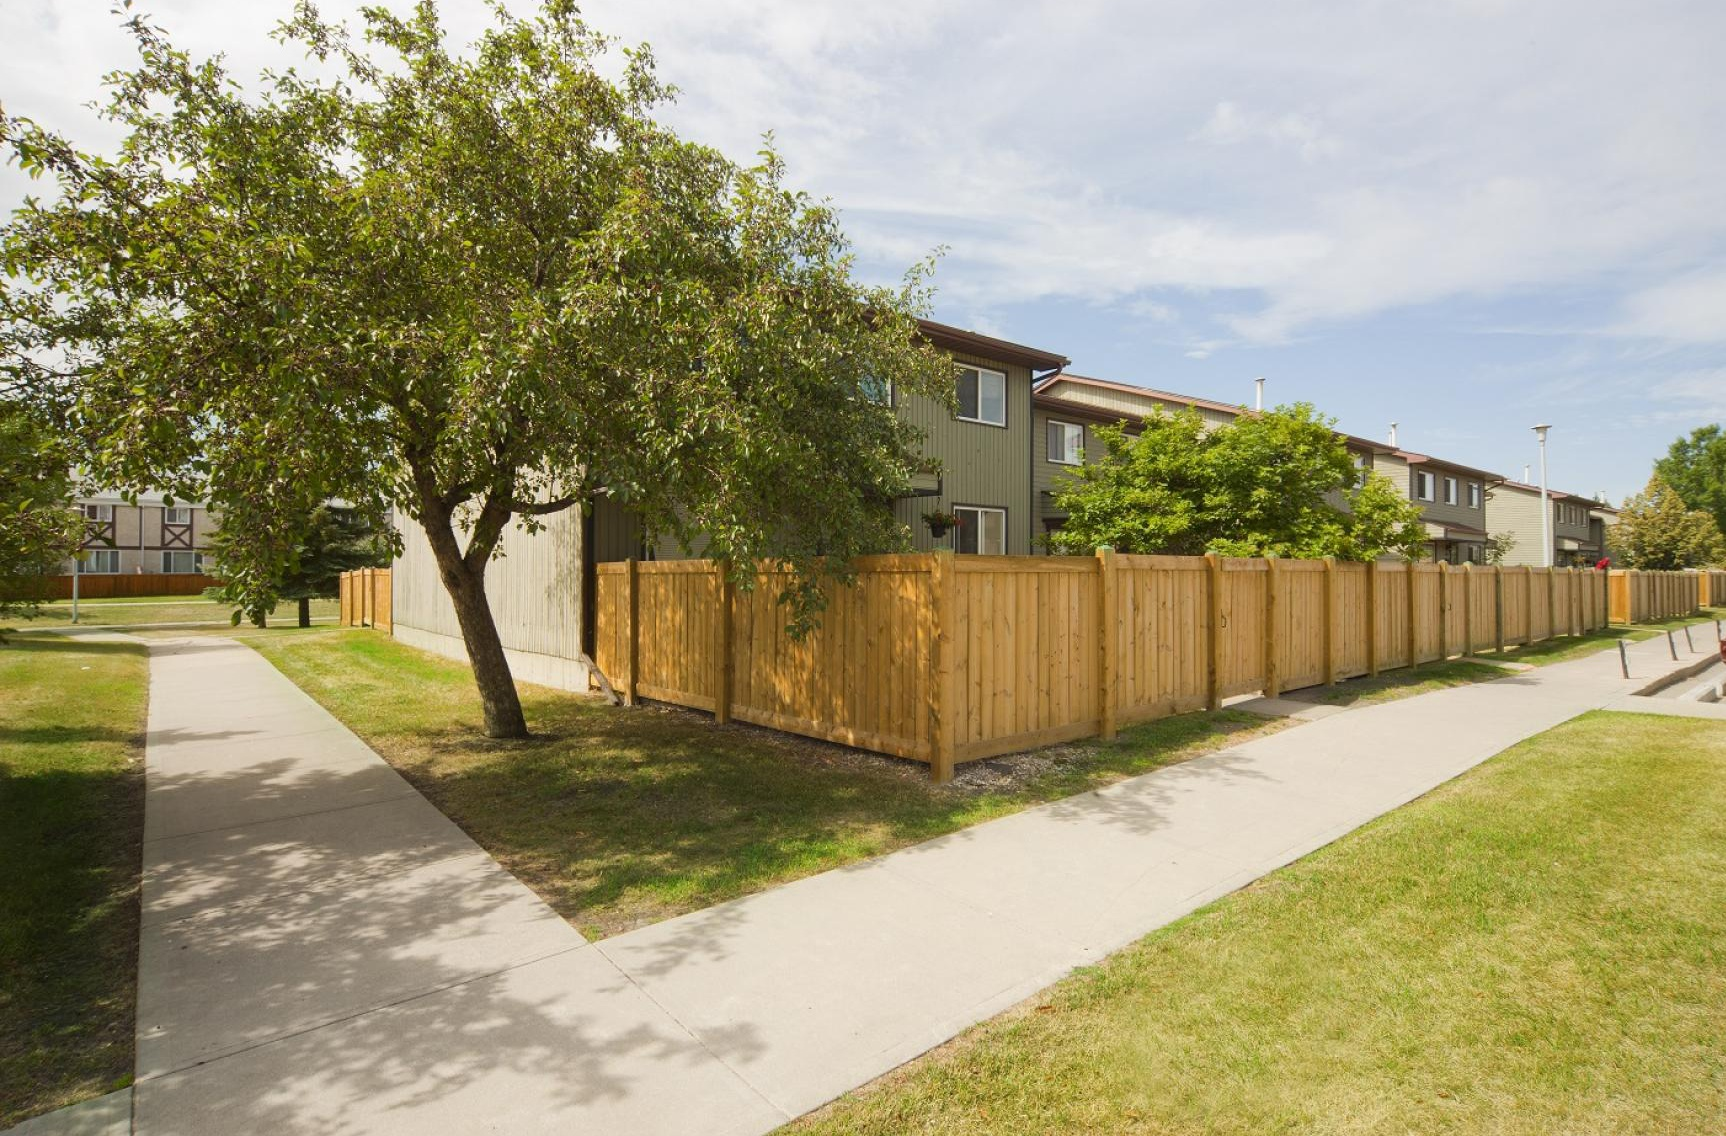 609 Cricket Crt NW in Edmonton, AB is Now Available